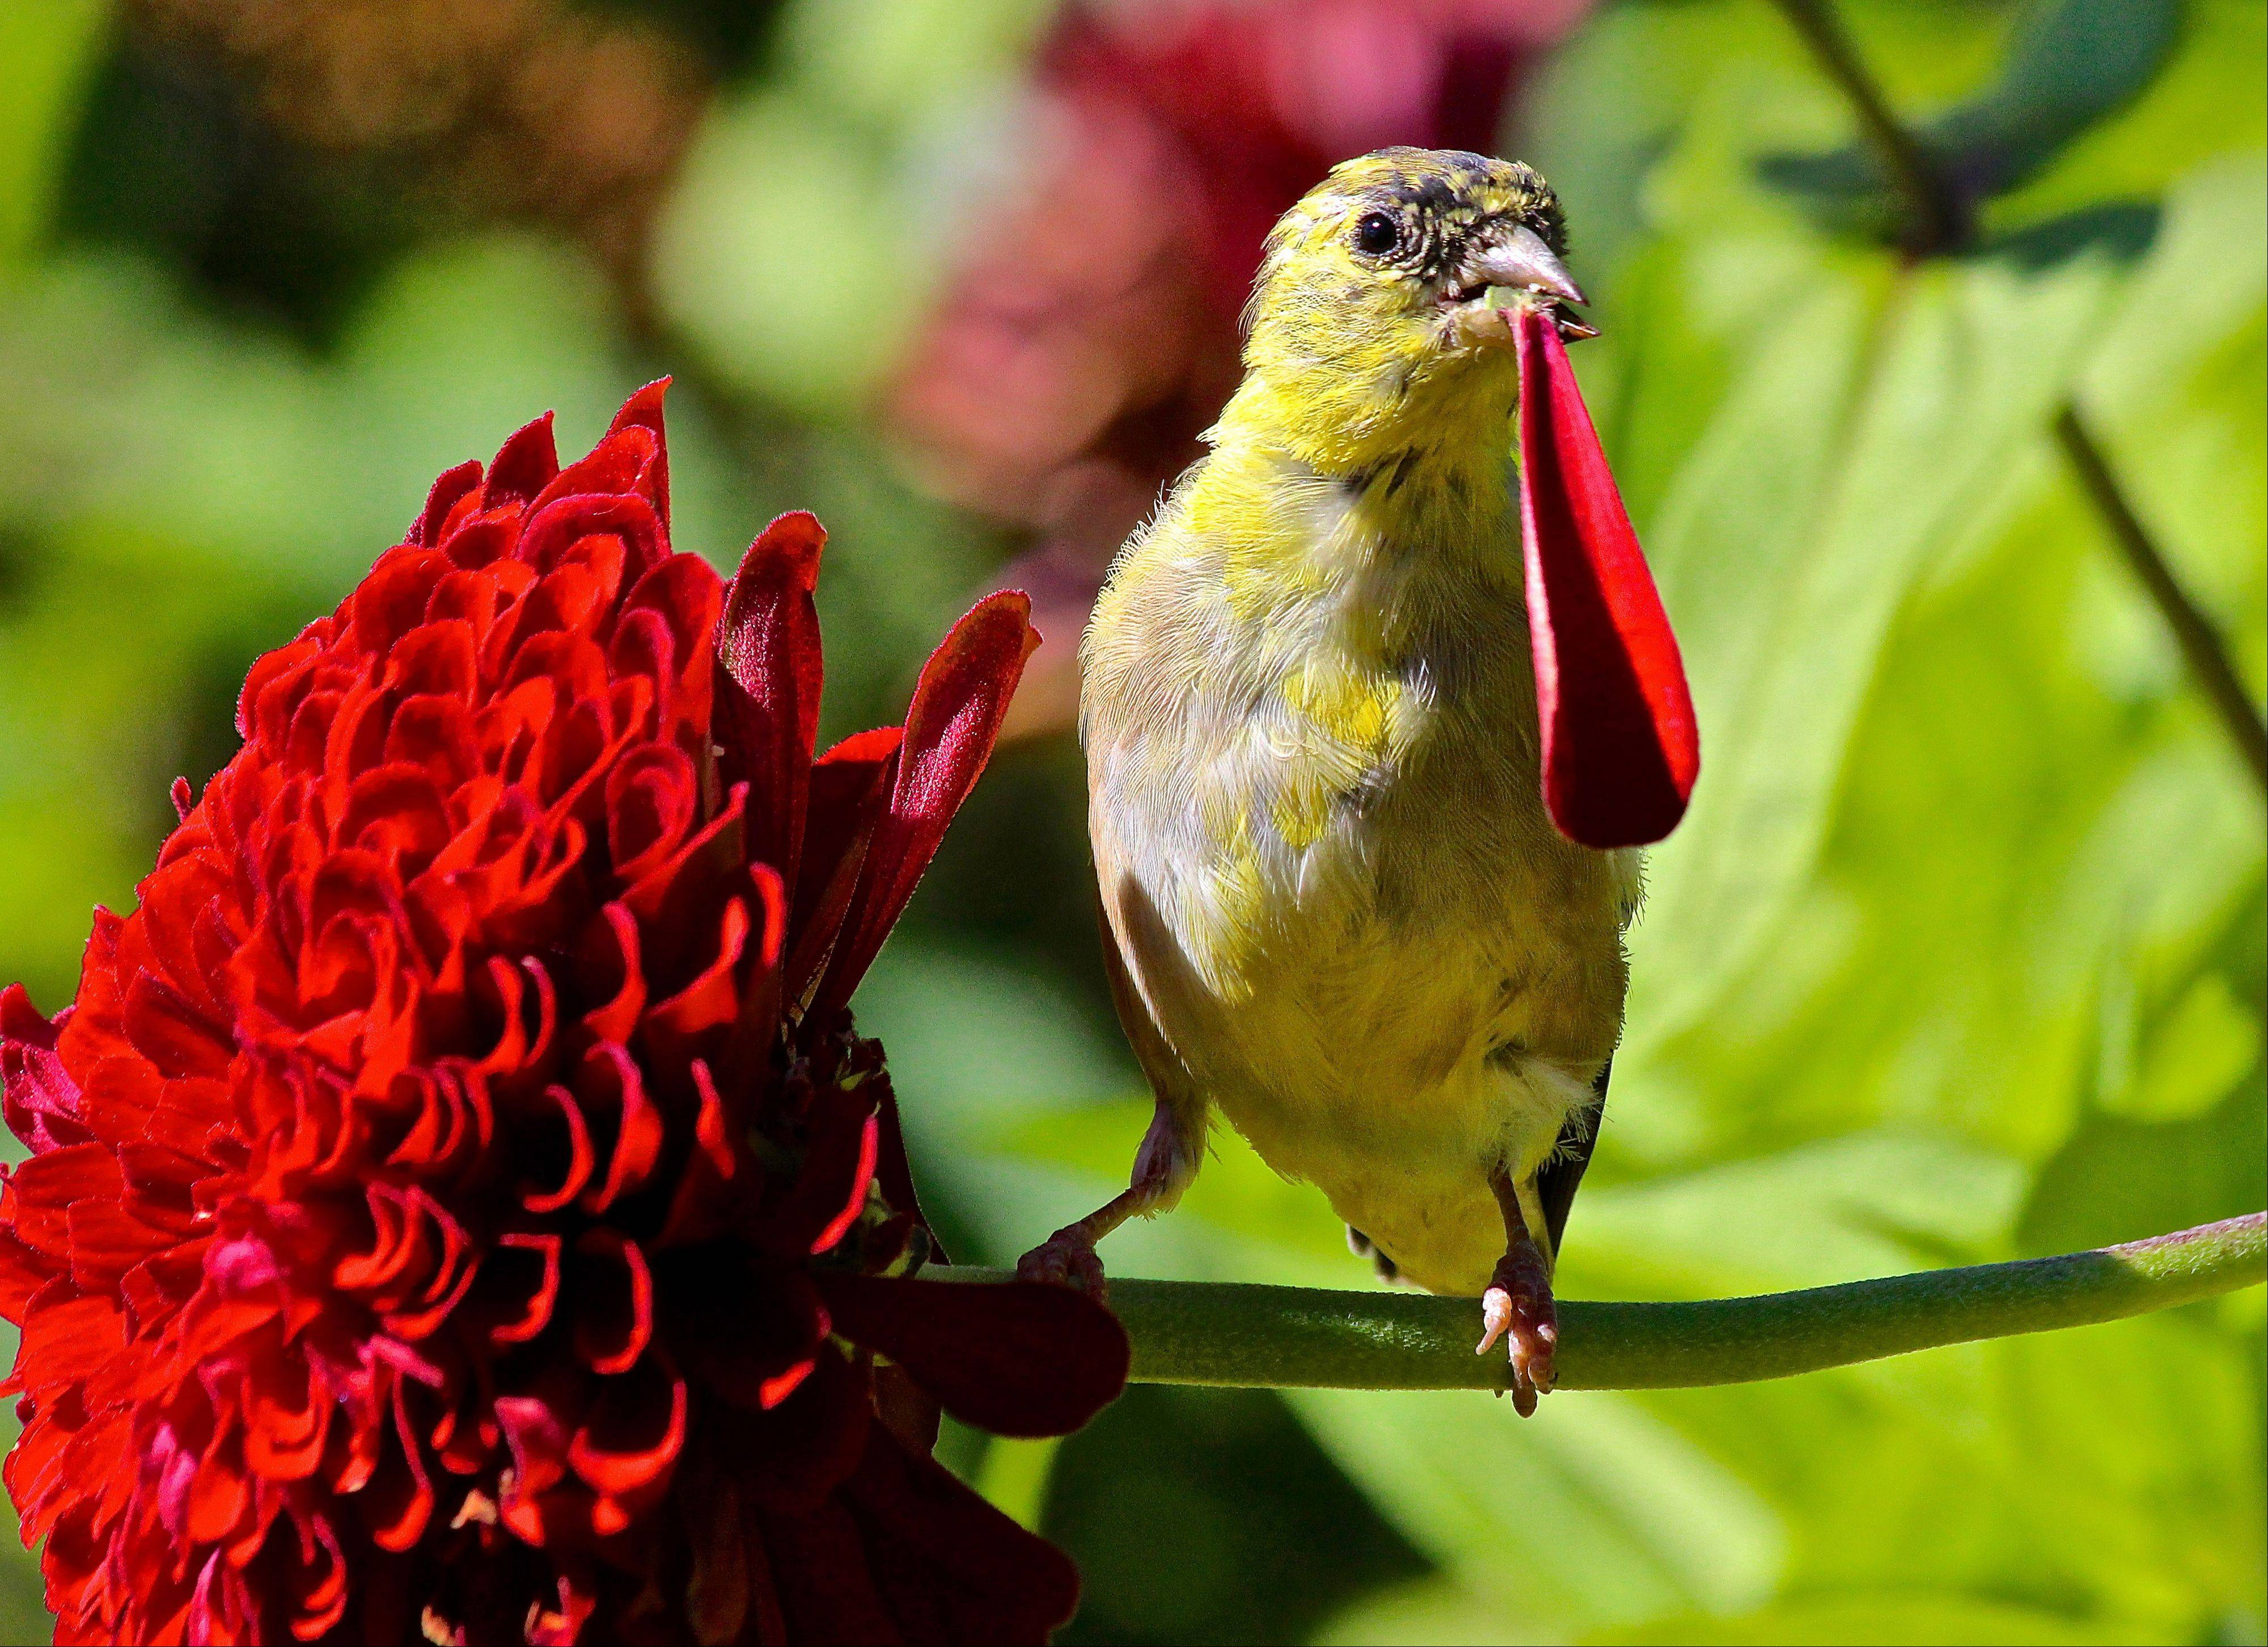 A bright yellow Gold Finch pulls off red zinnia petals at the Chicago Botanic Garden in Glencoe.